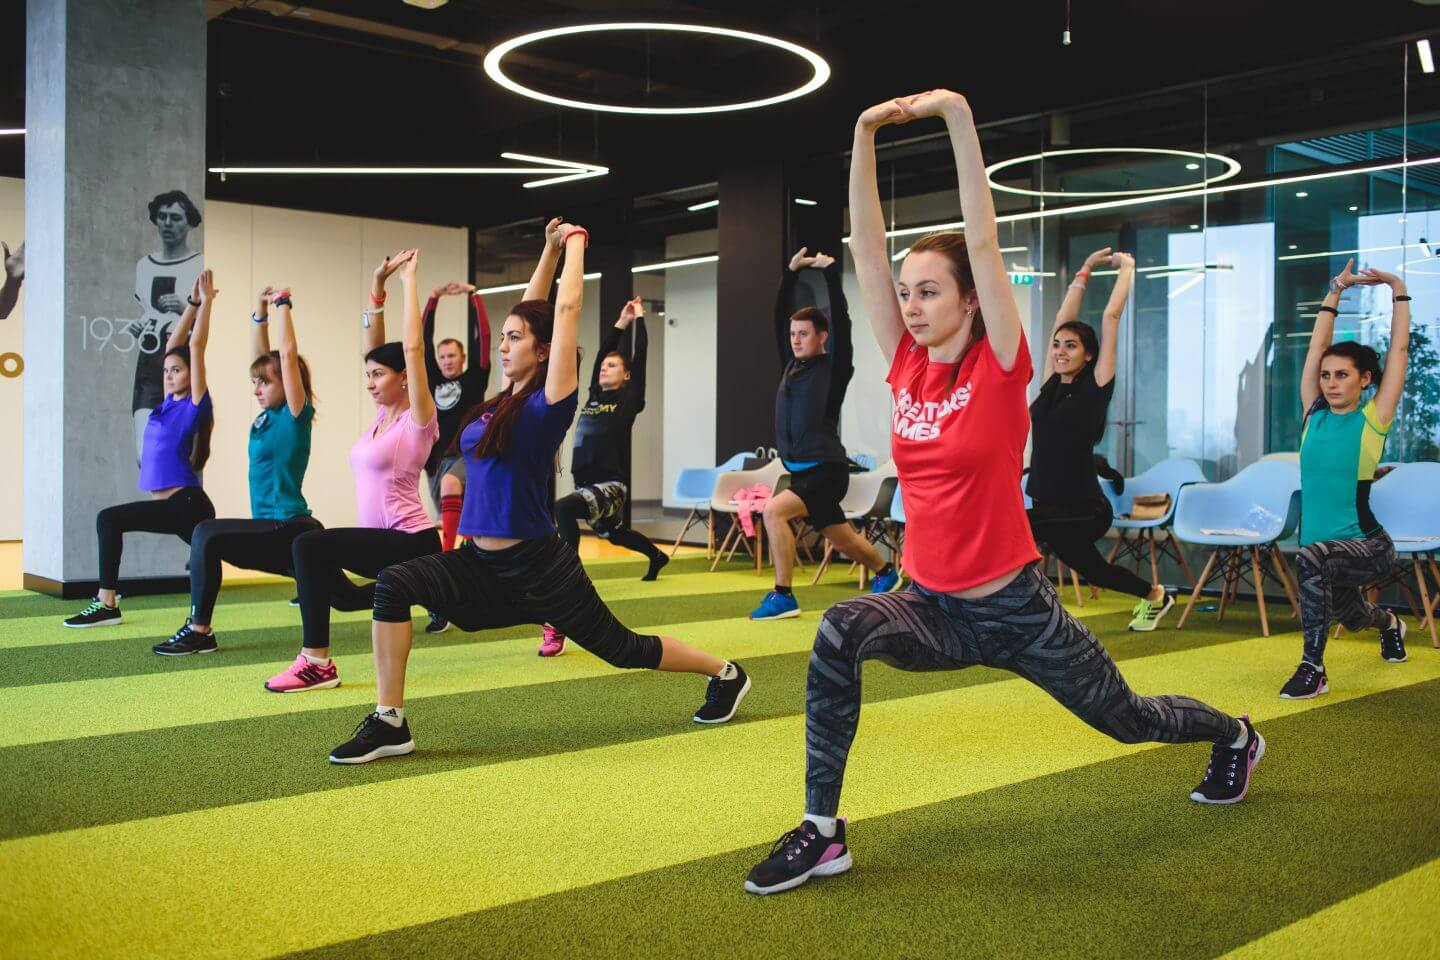 workplace wellness ideas  employee Health and Wellness Programs wellness tips for the workplace